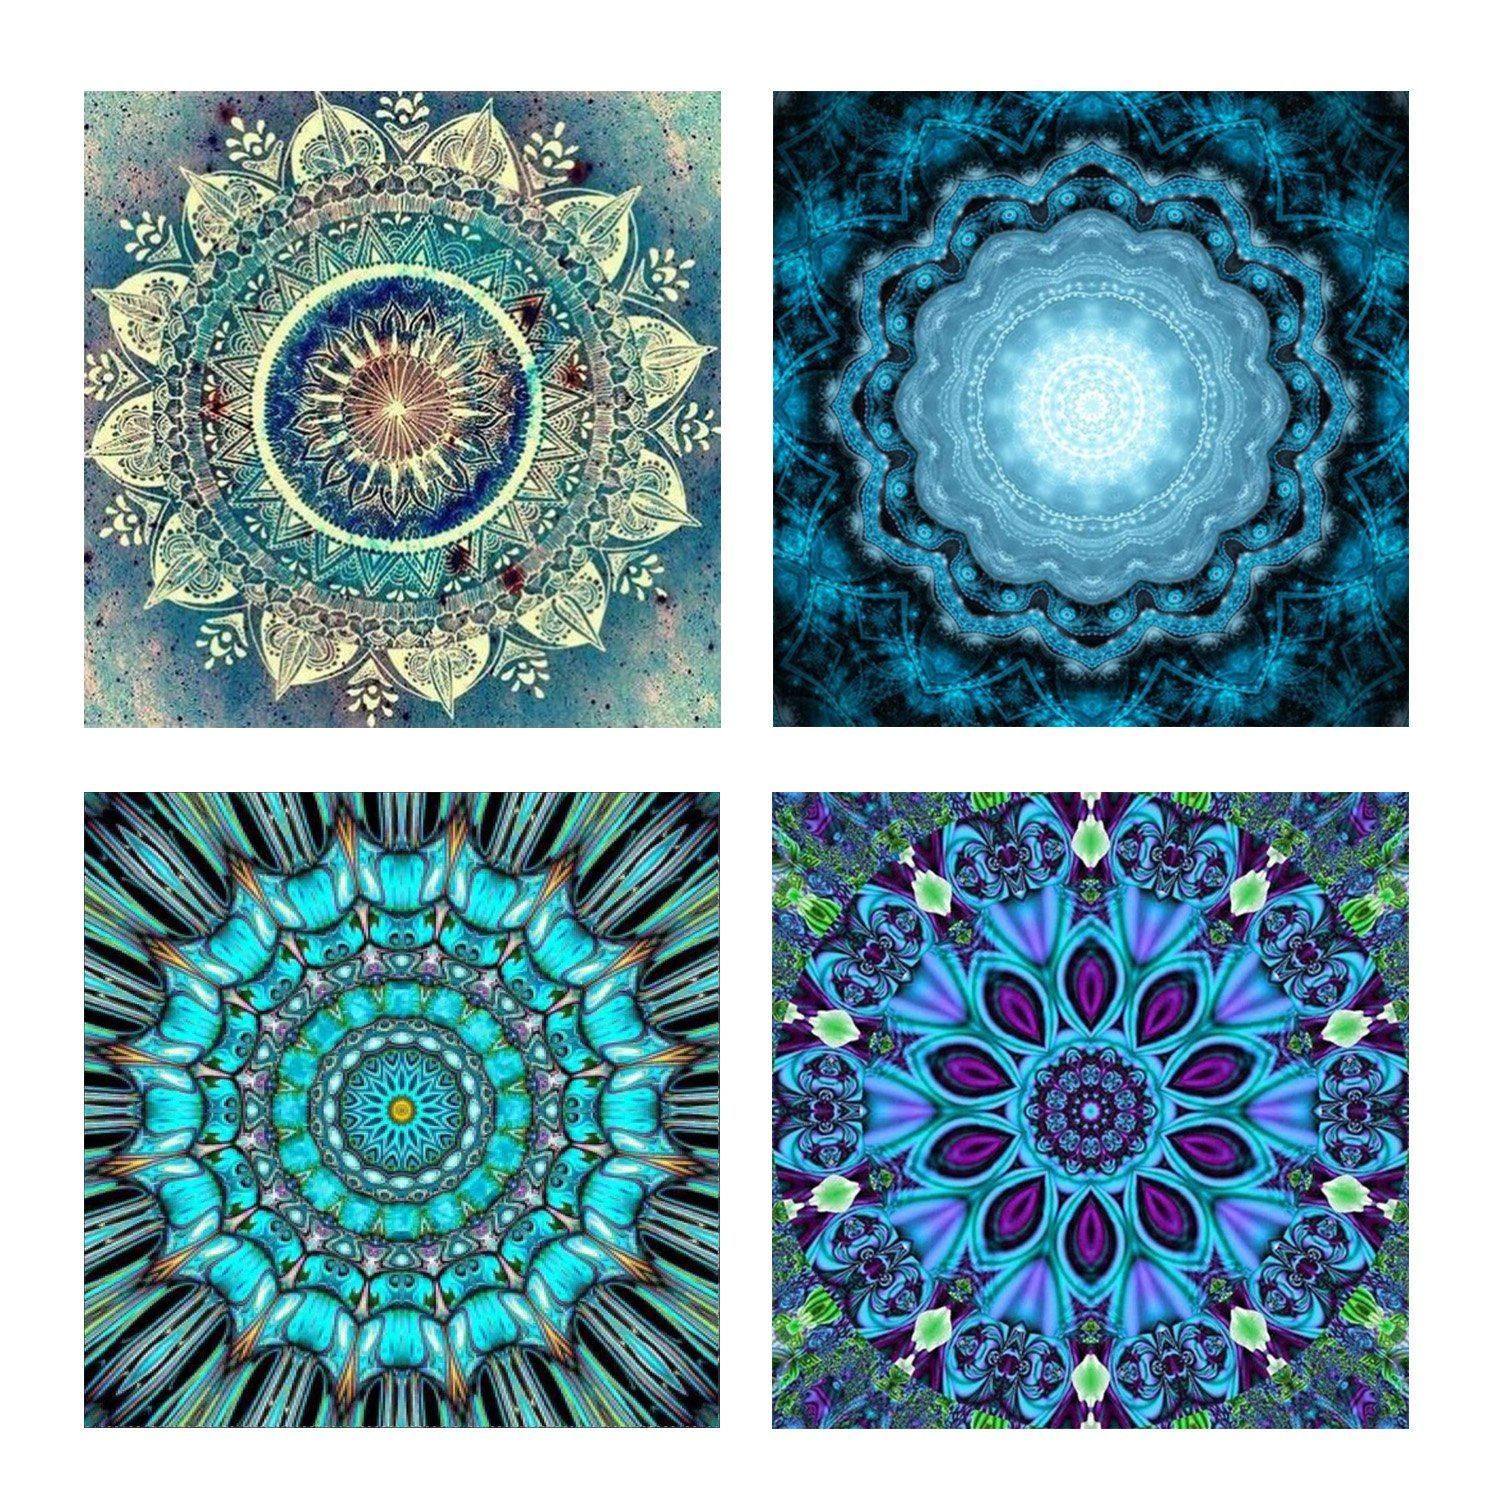 4 Pack 5D DIY Diamond Painting Set Decorating Cabinet Table Stickers Crystal Rhinestone Diamond Embroidery Paintings Pictures For Study Room,Flower Painting(25X25CM/9.8X9.8inch)